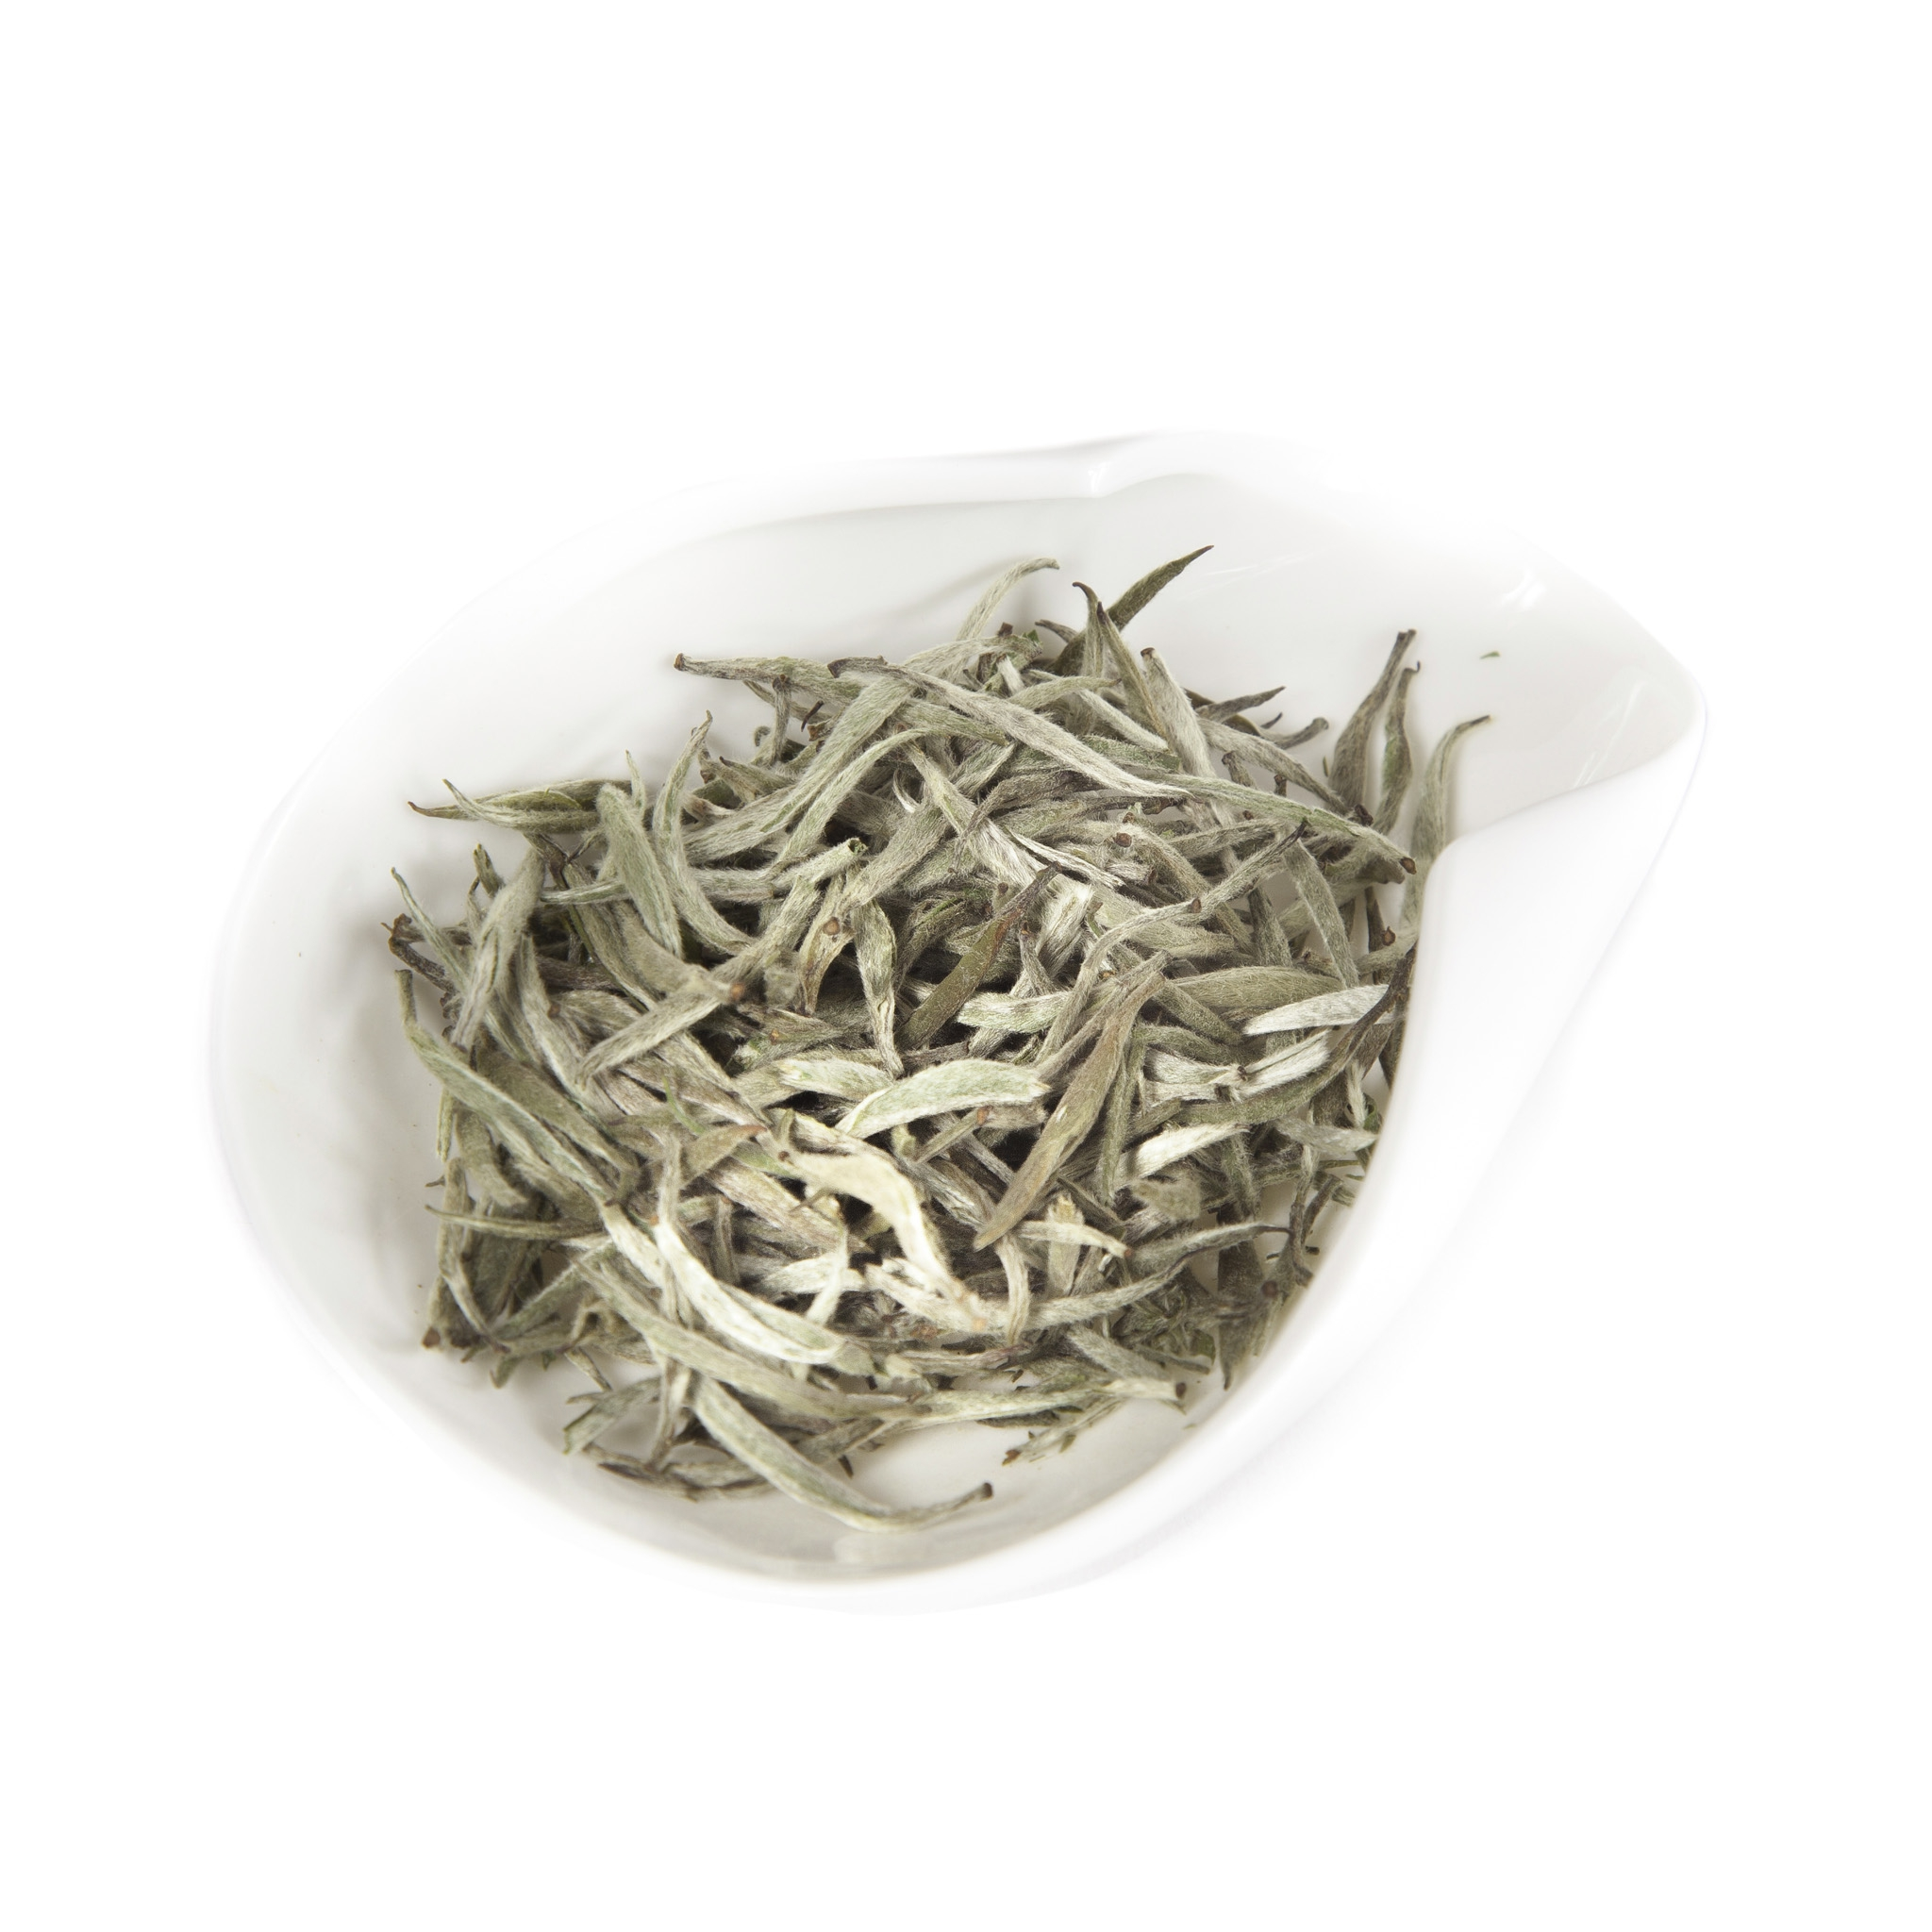 Nepal Silver Tips